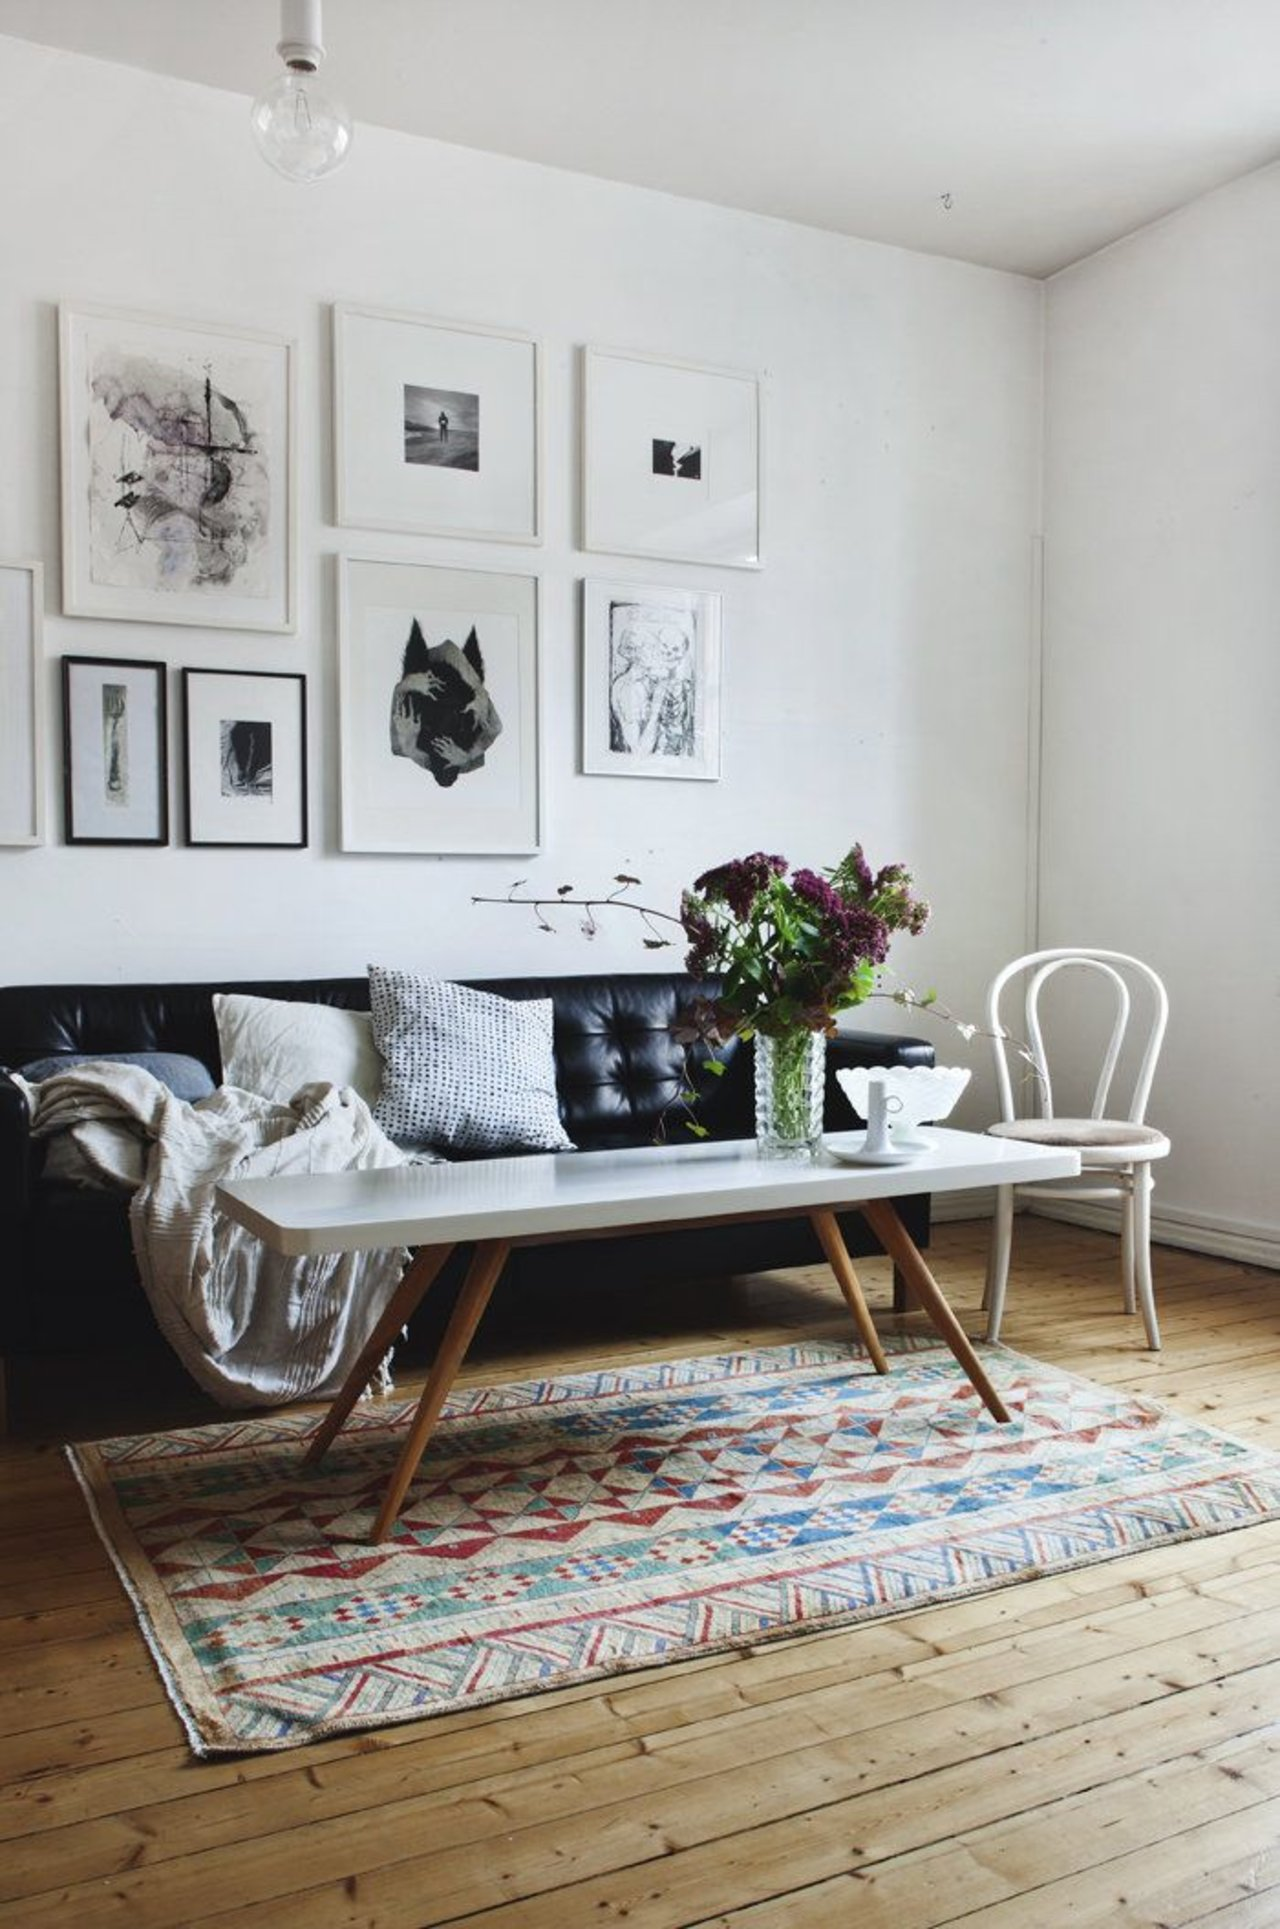 Real/Deal/Steal: An Understated Living Room With A Boho Touch